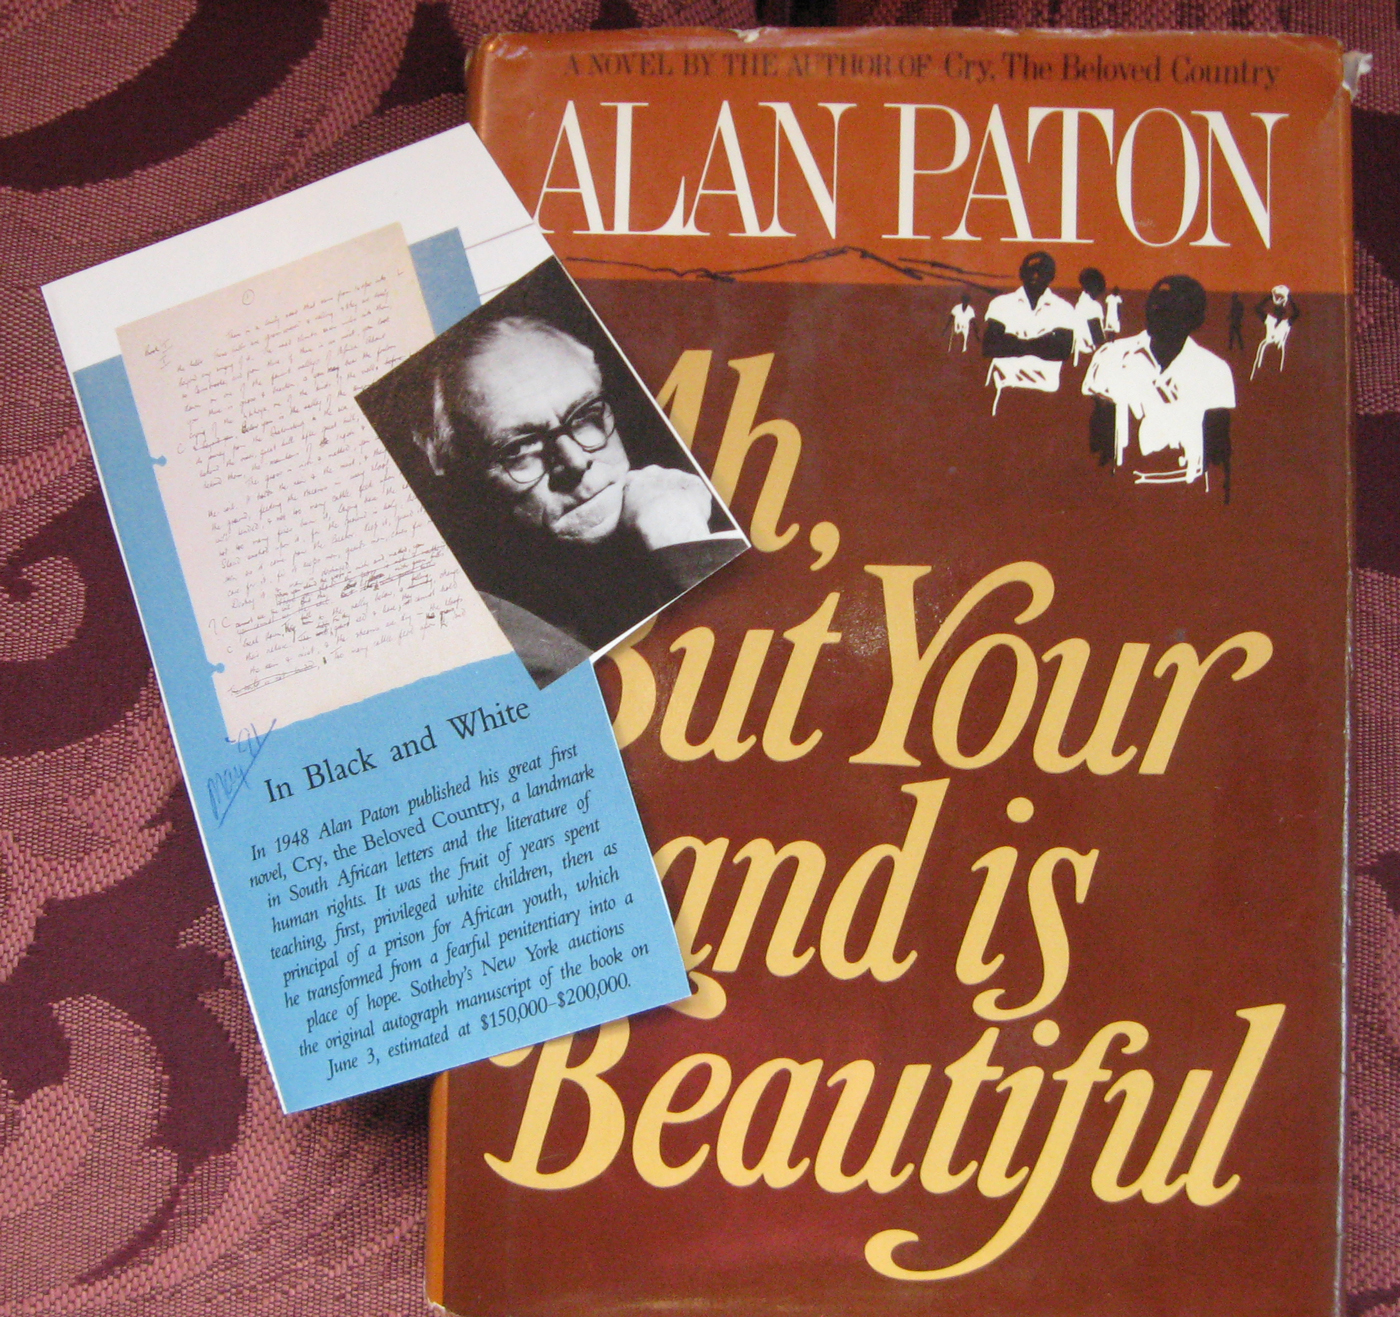 an analysis of the book cry the beloved country by alan patton